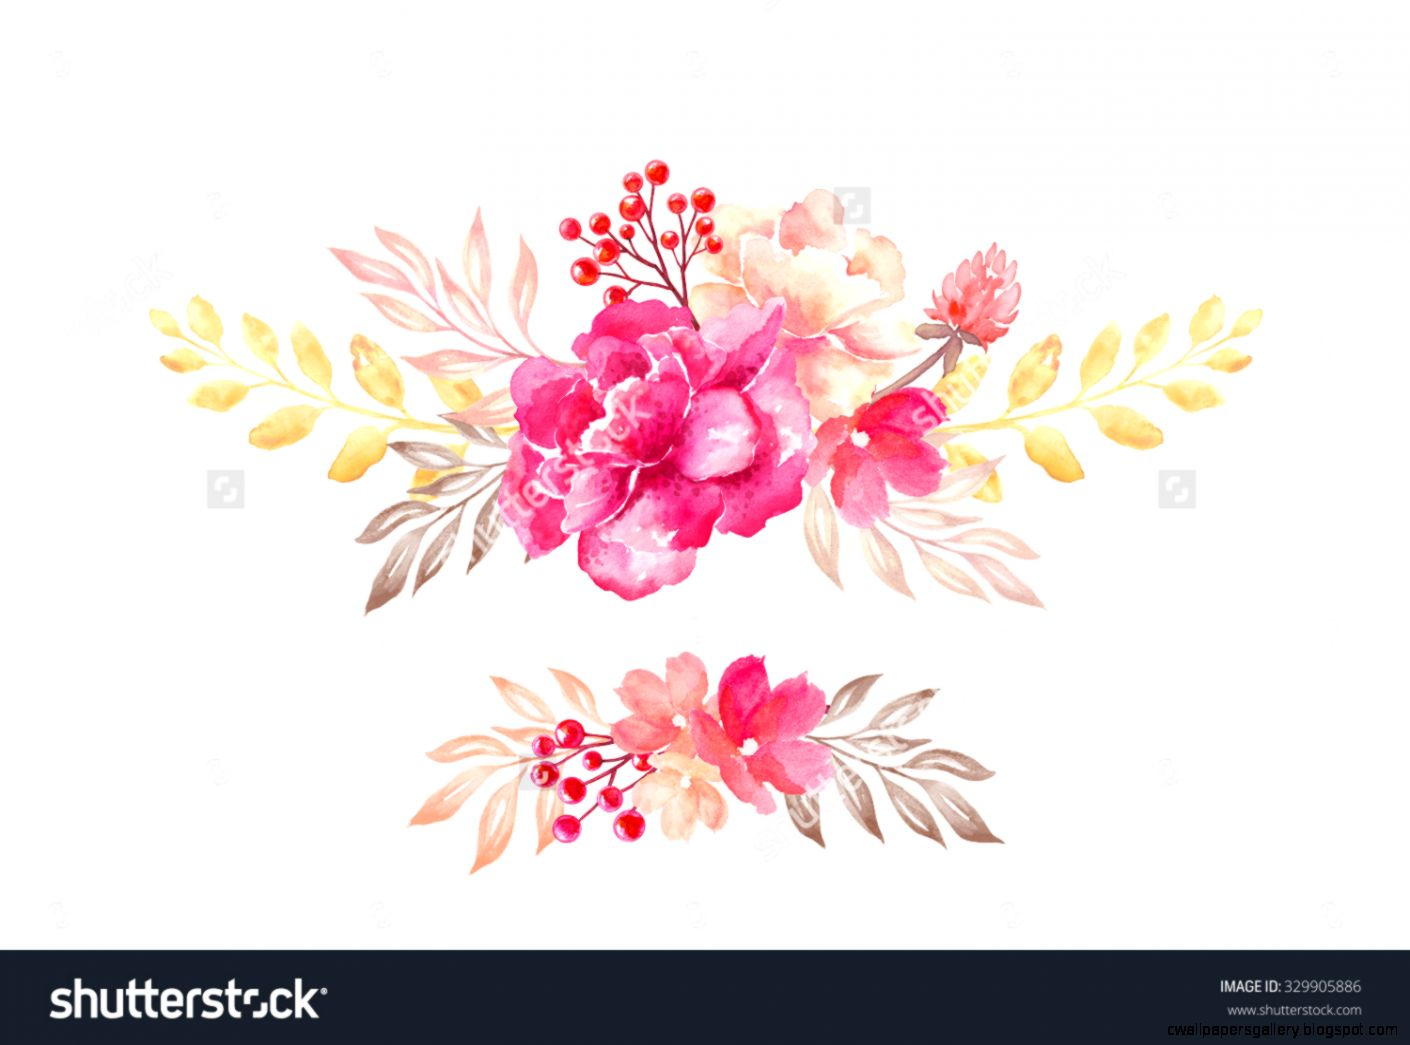 Fl Arrangement Flowers Bouquet Design Elements Watercolor